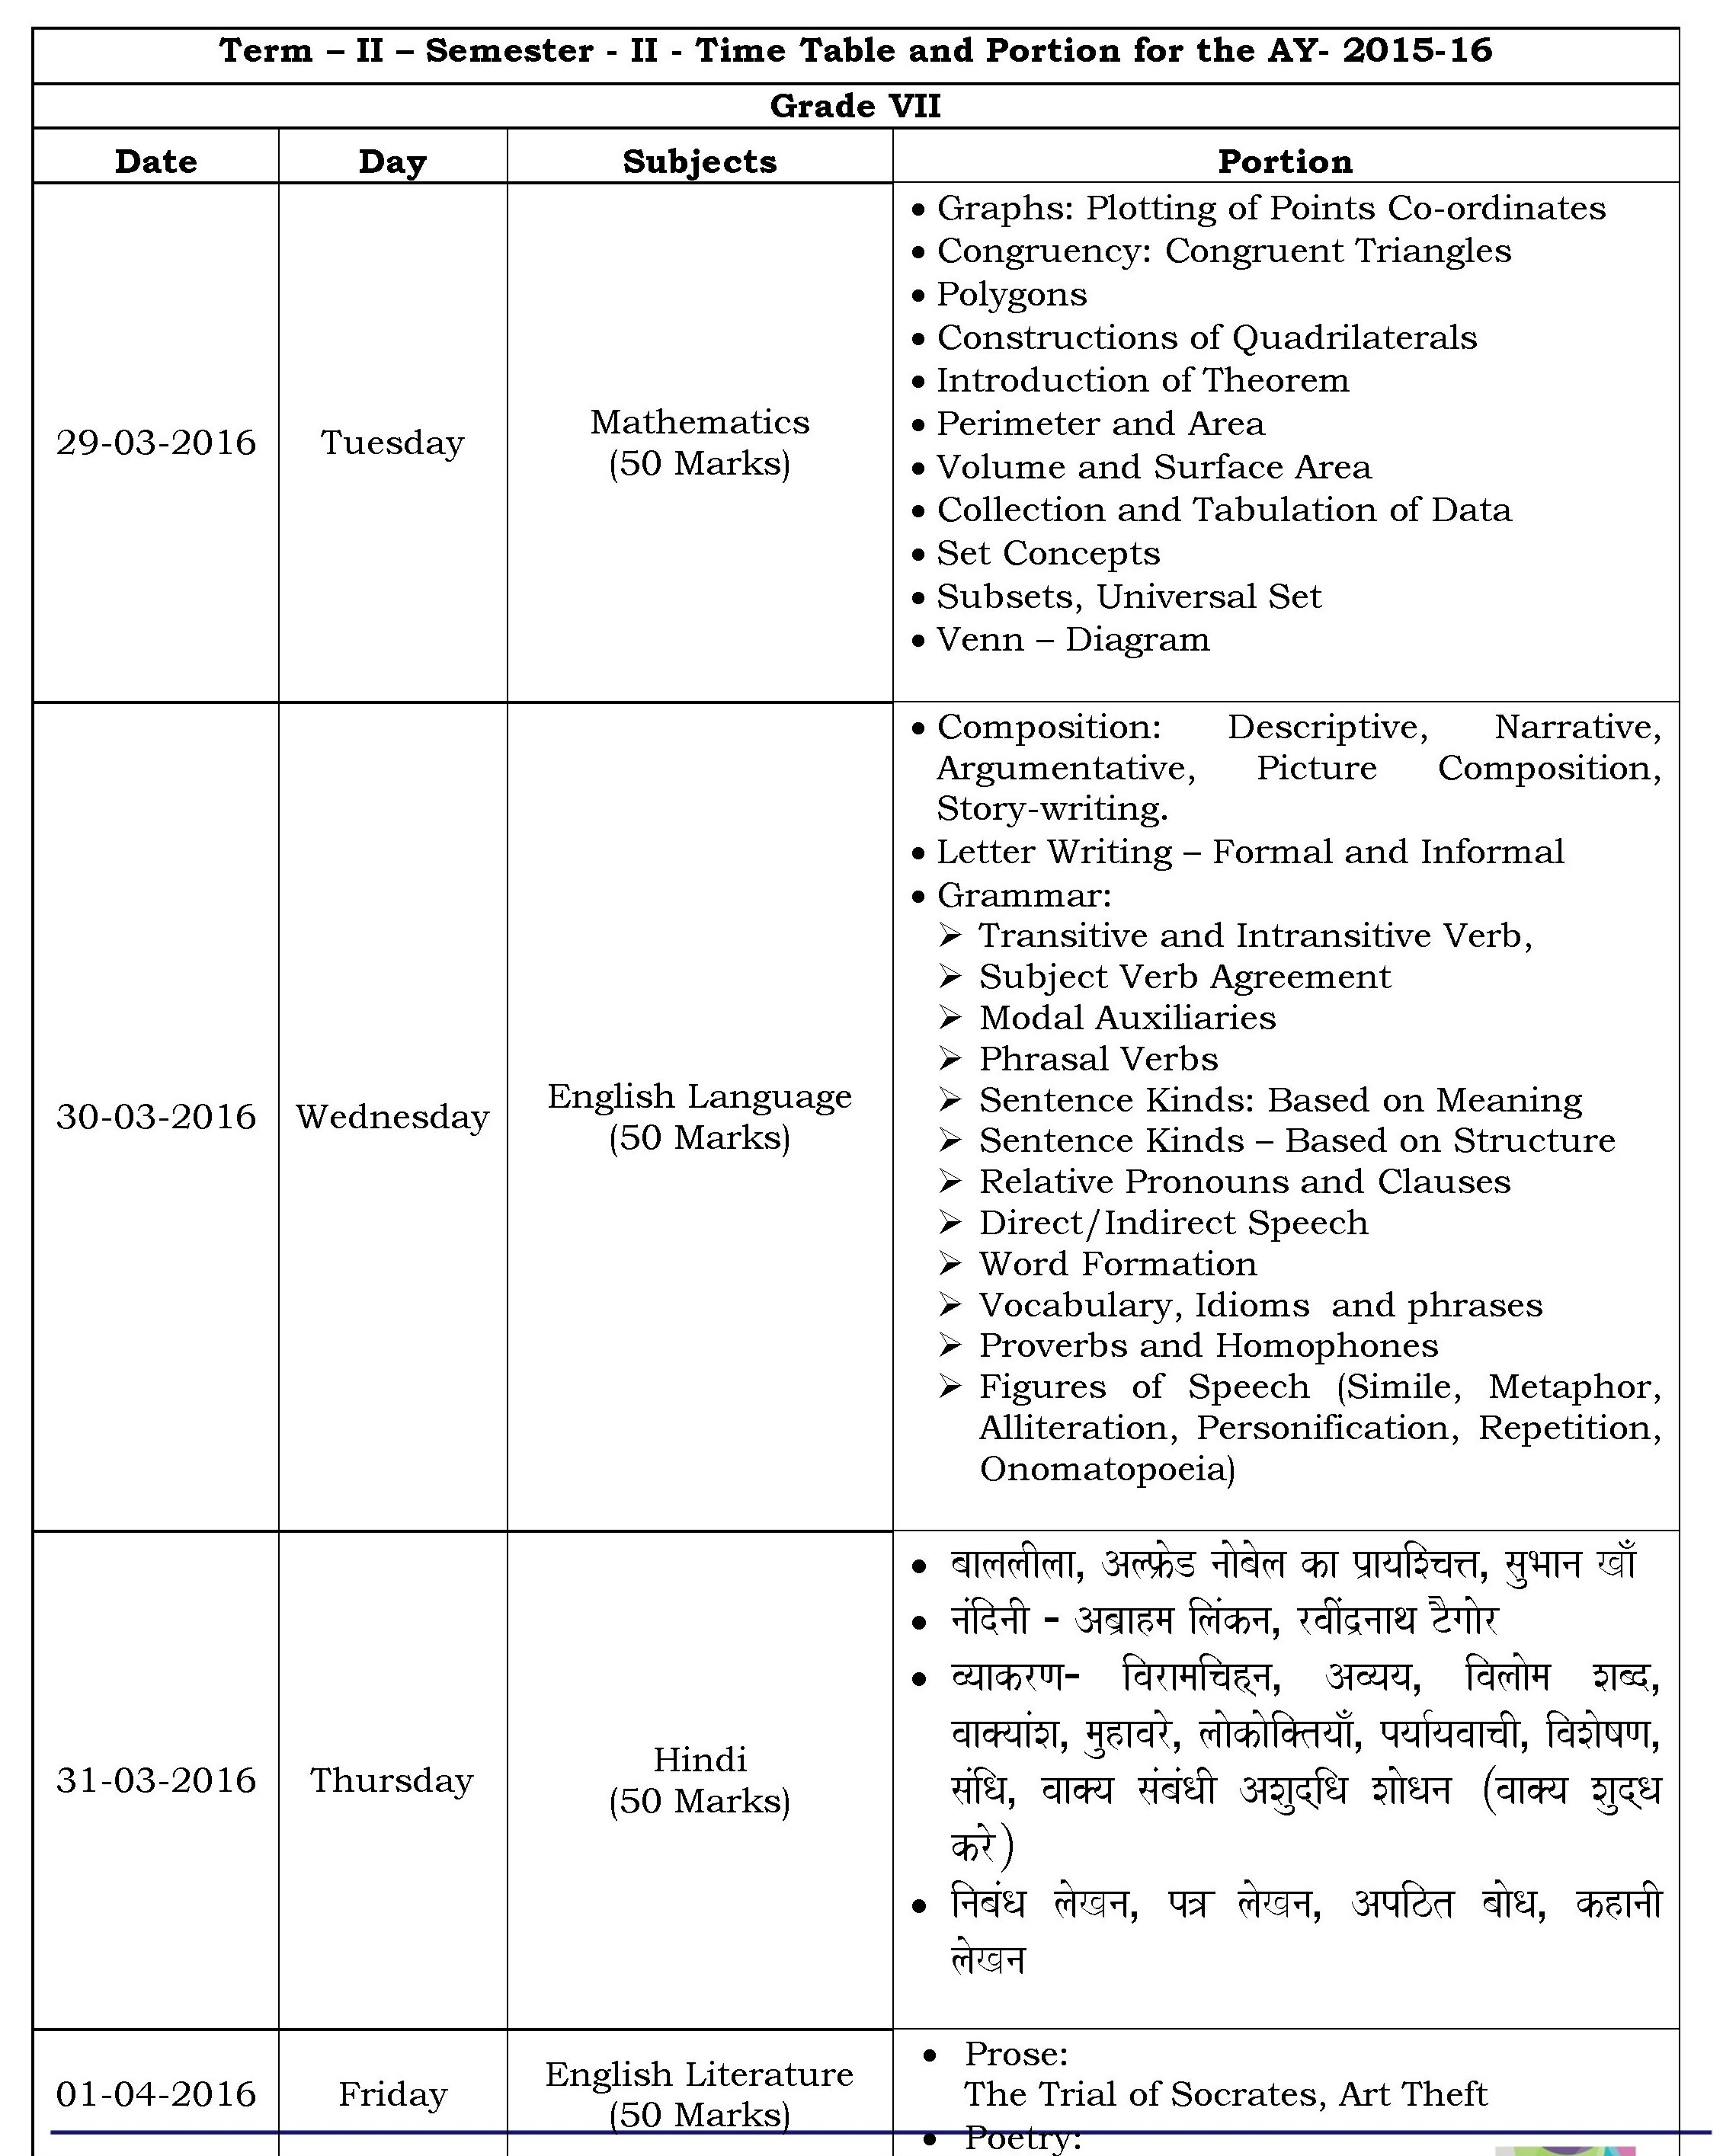 Grade vii term ii semester ii time table and portion for 2015 16 31 mar pooptronica Images